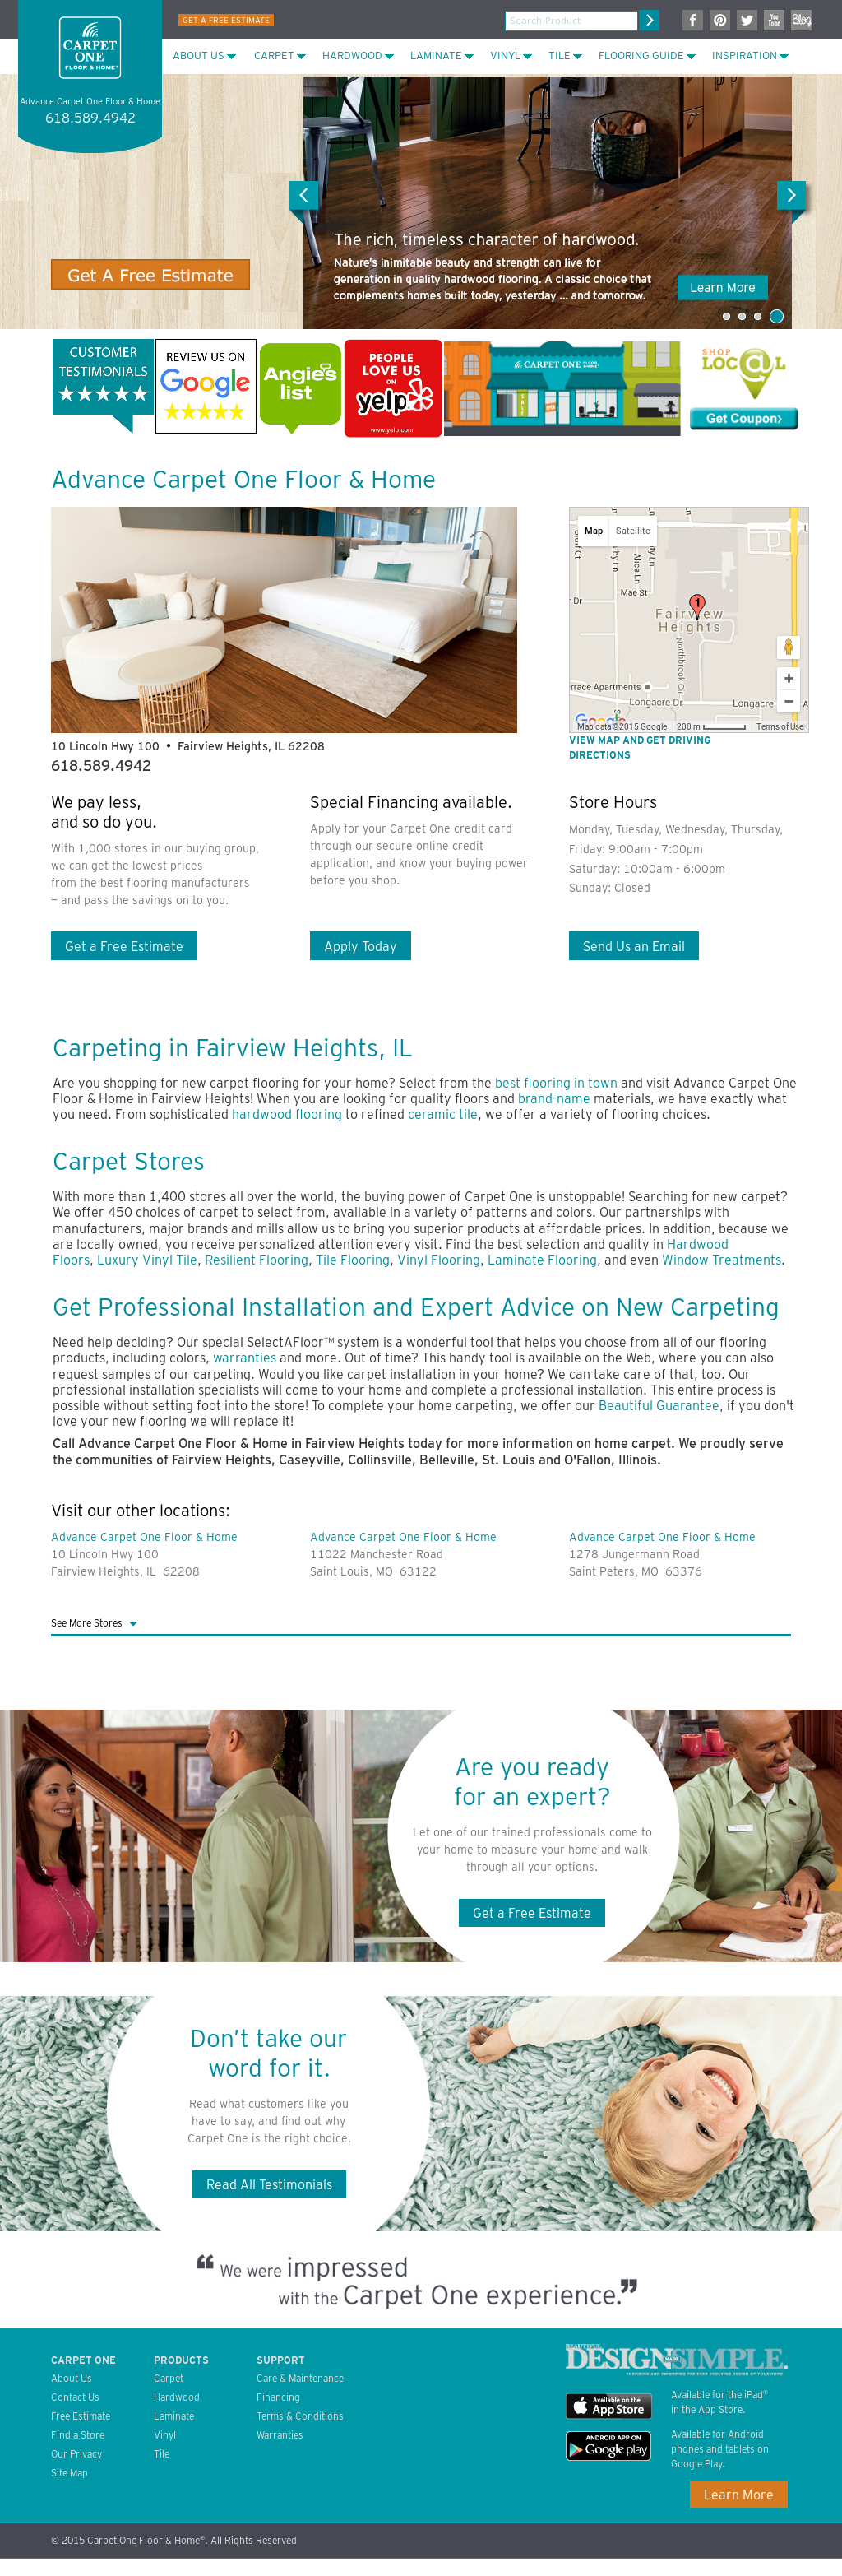 Advancecarpet1Fairviewheights Competitors, Revenue and Employees - Owler Company Profile